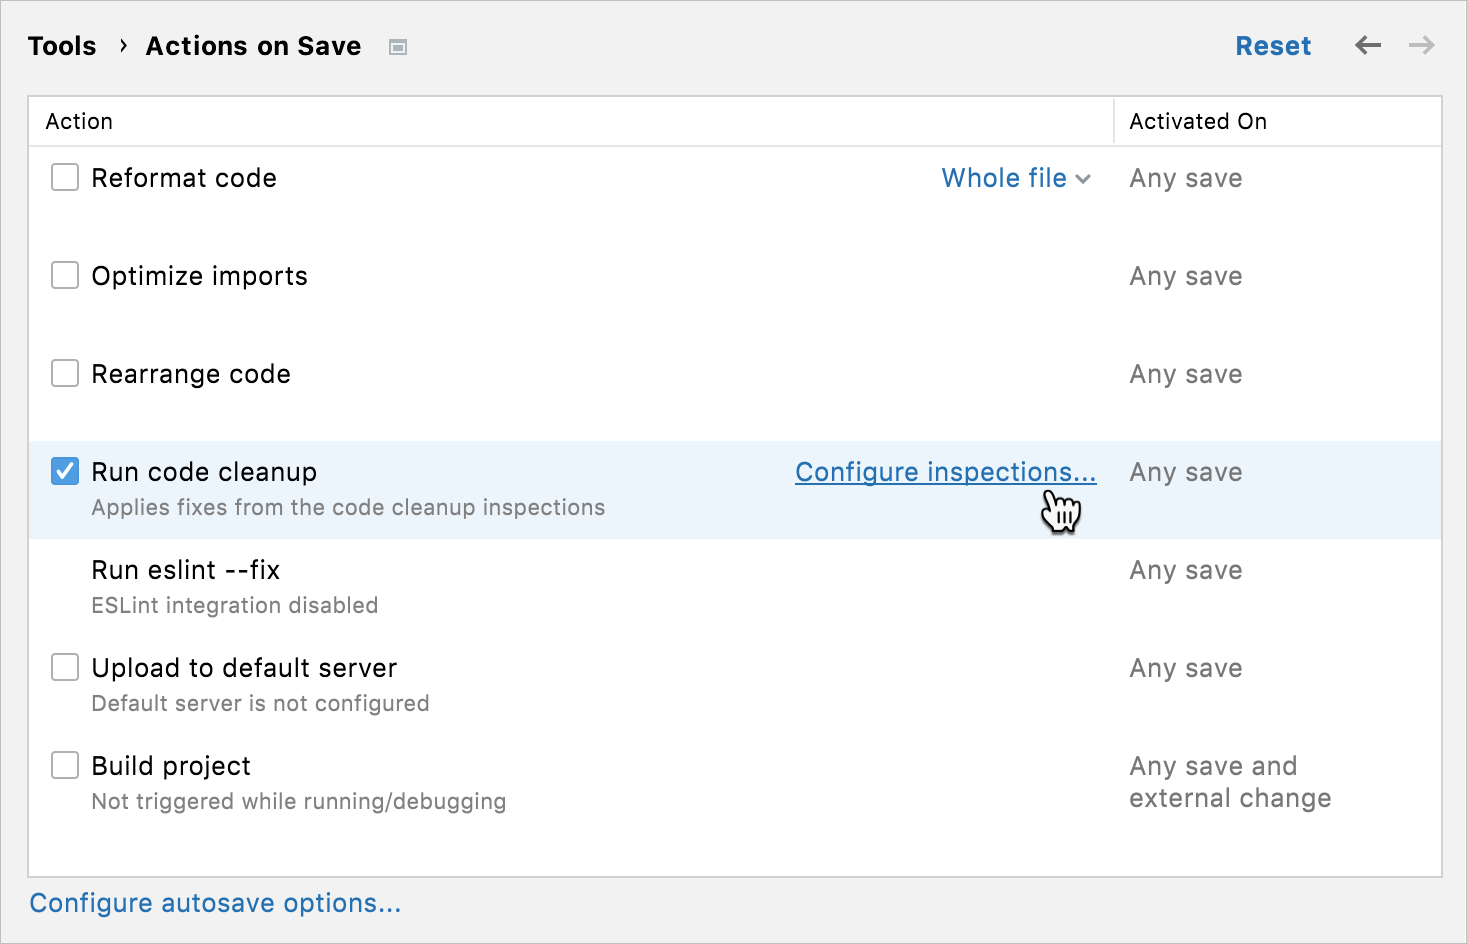 Settings/Preferences: Actions on save